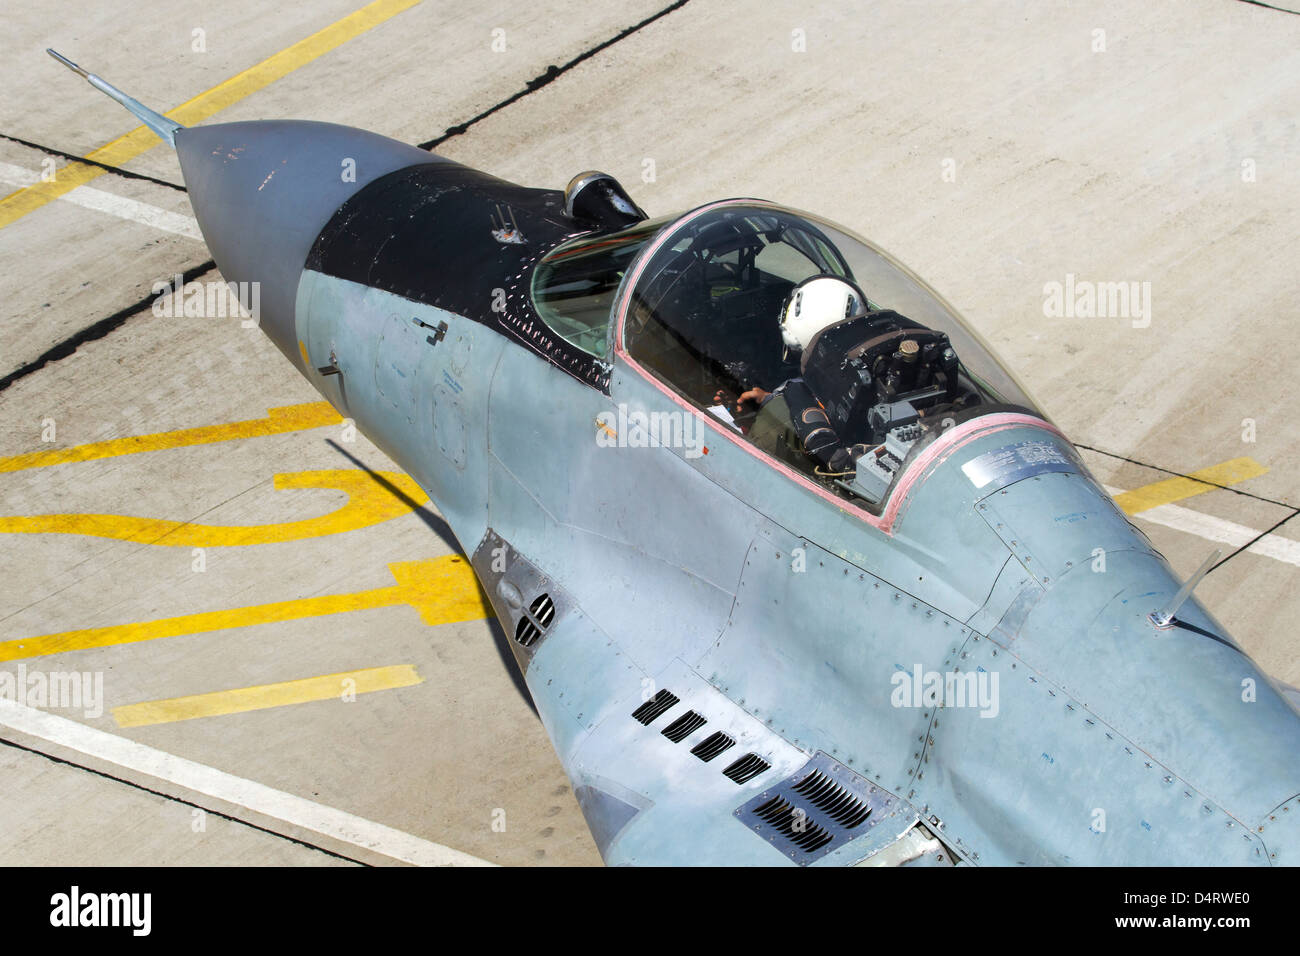 Top view of the cockpit on a Bulgarian Air Force MiG-29 jet fighter